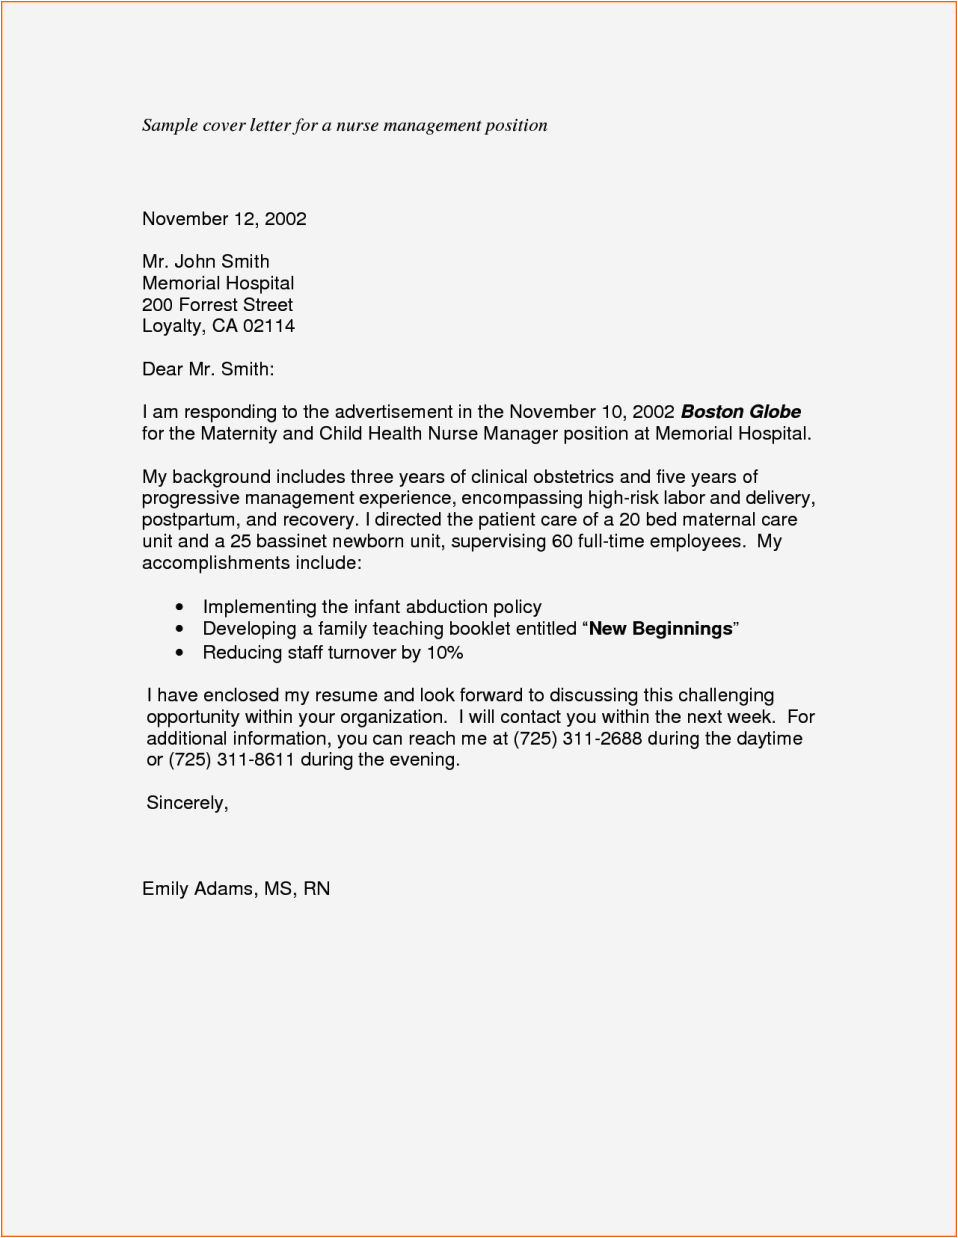 Writing A Cover Letter for A Management Position Cover Letter for Manager Position Resume Template